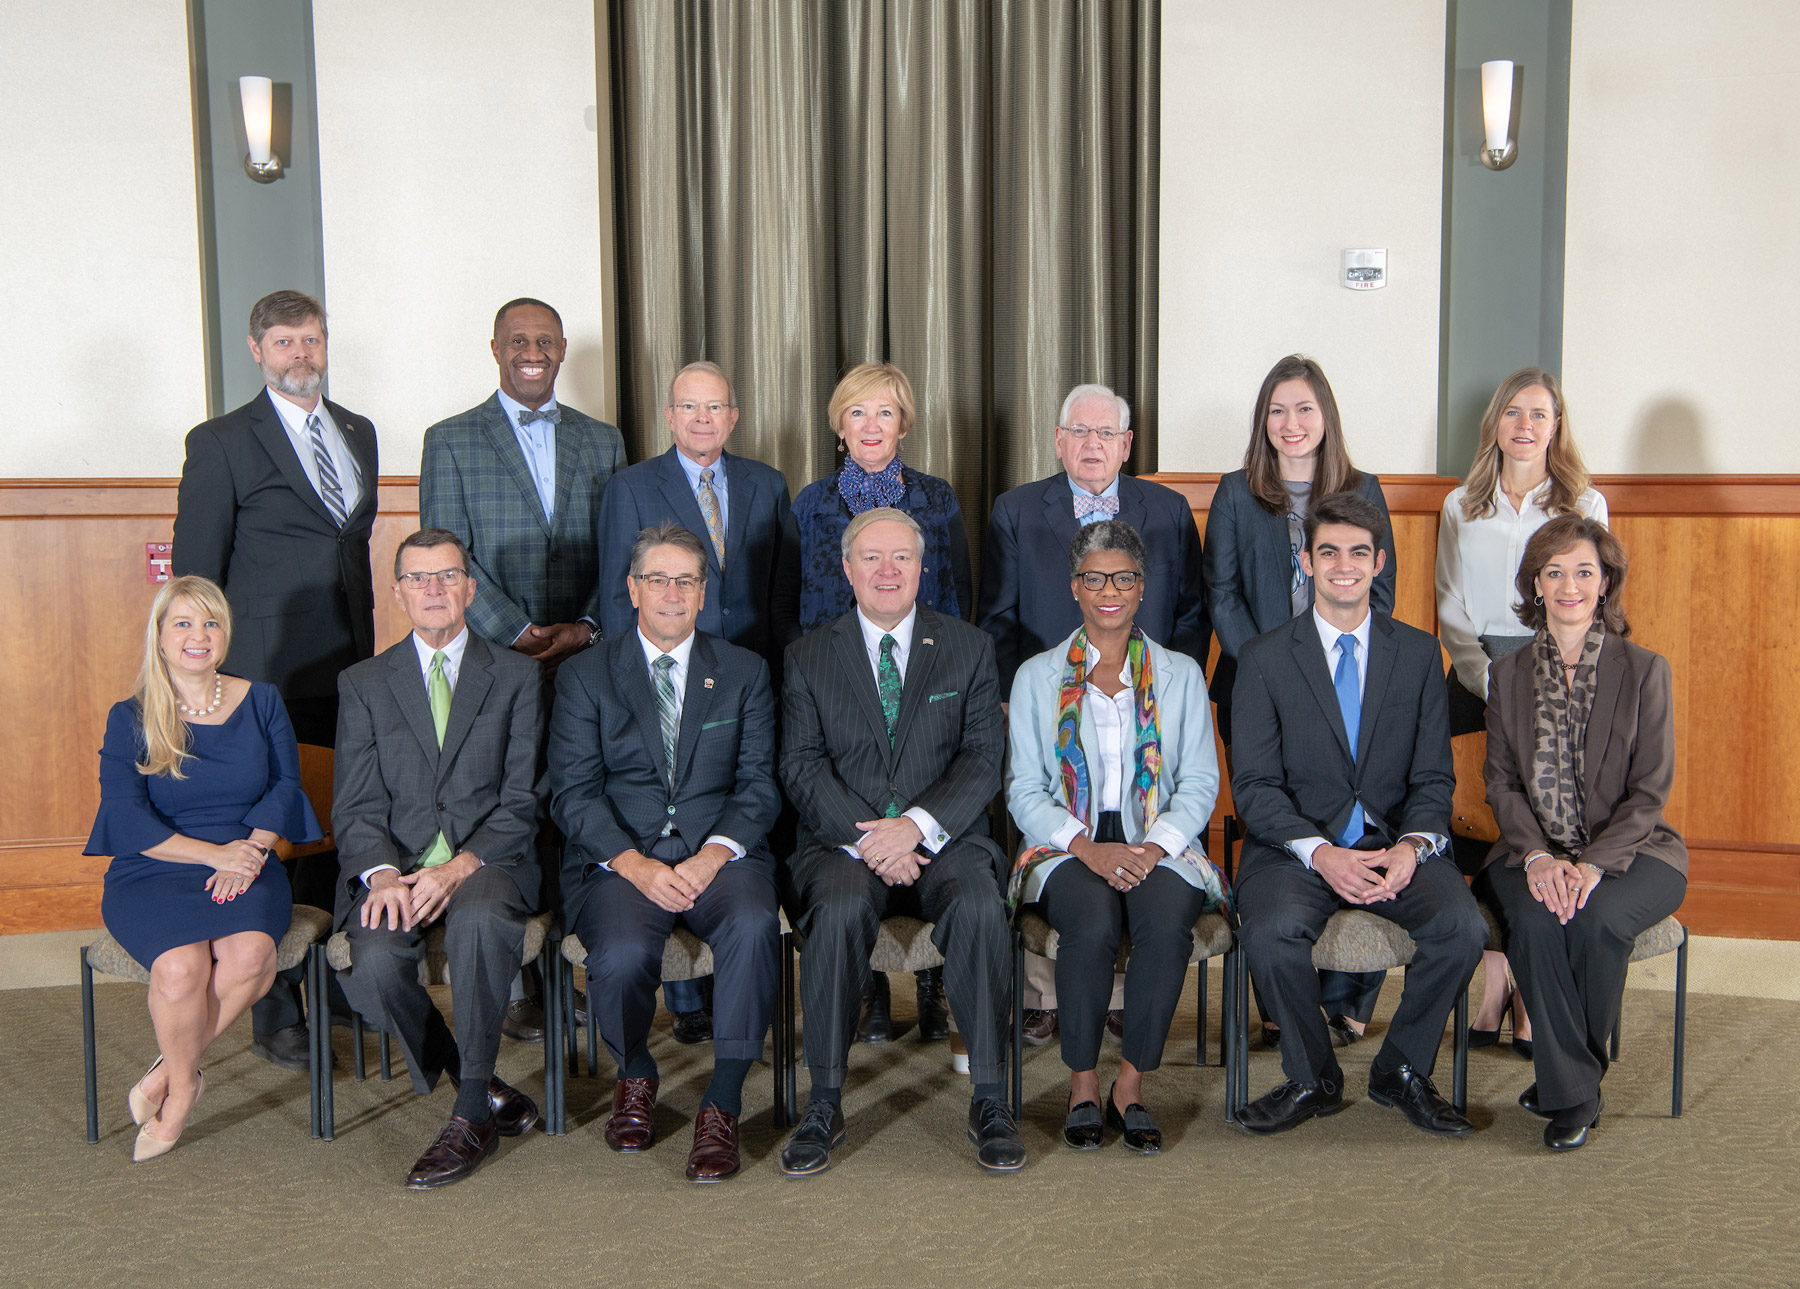 Group portrait of the 2018 - 2019 Ohio University Board of Trustees